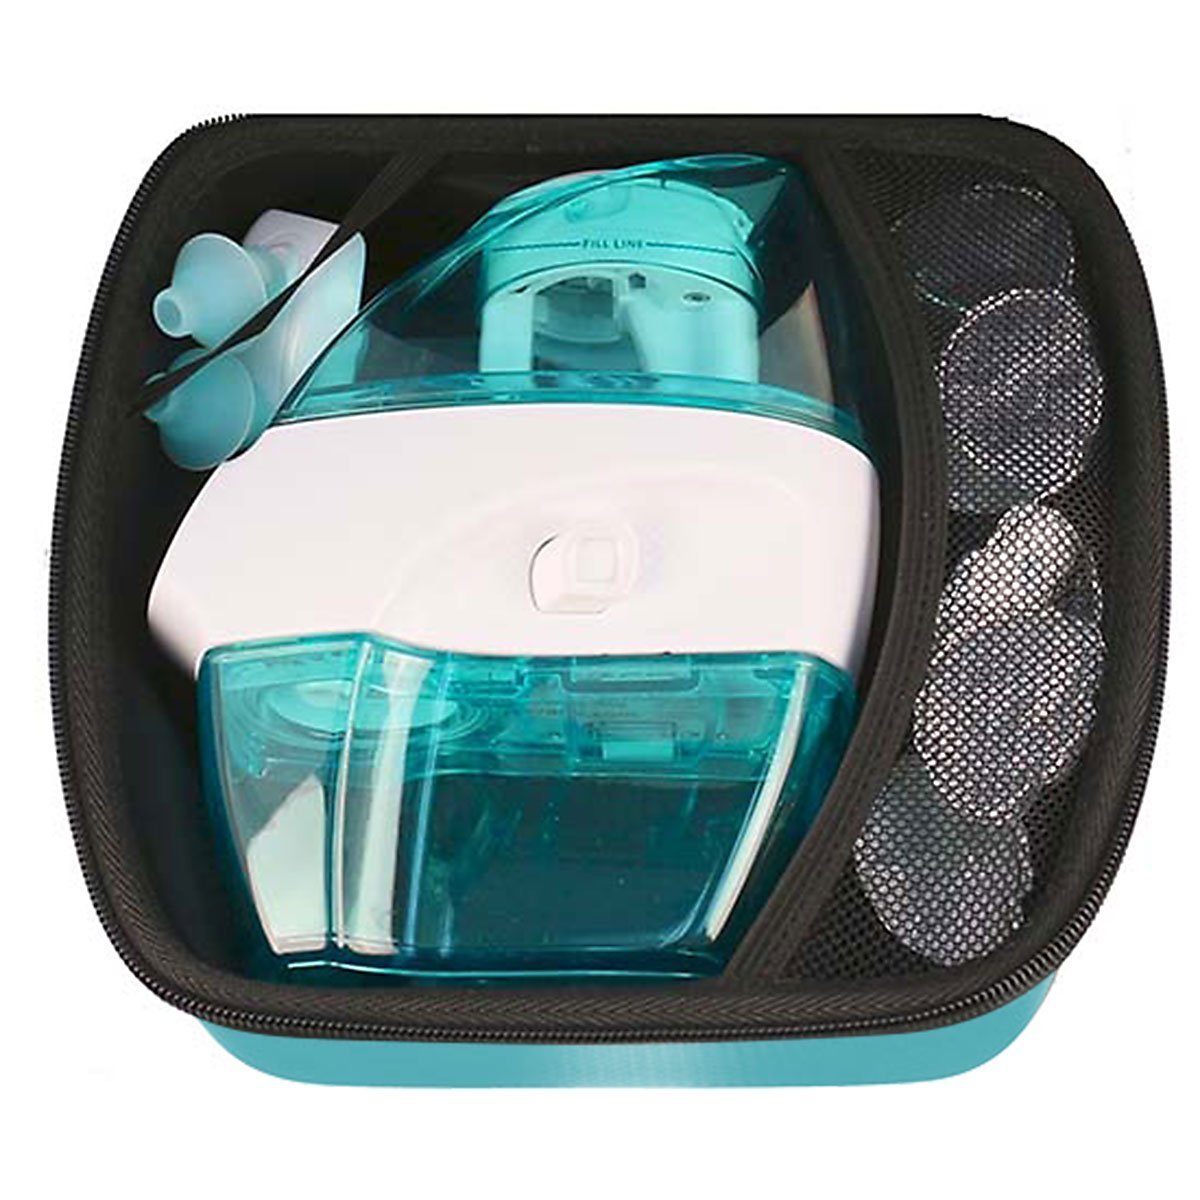 Navage Nasal Irrigation Deluxe Bundle: Naväge Nose Cleaner, 60 SaltPod Capsules, Countertop Caddy, and Travel Case. $160.75 if purchased separately. You save $40.80 (25%) by Navage (Image #8)